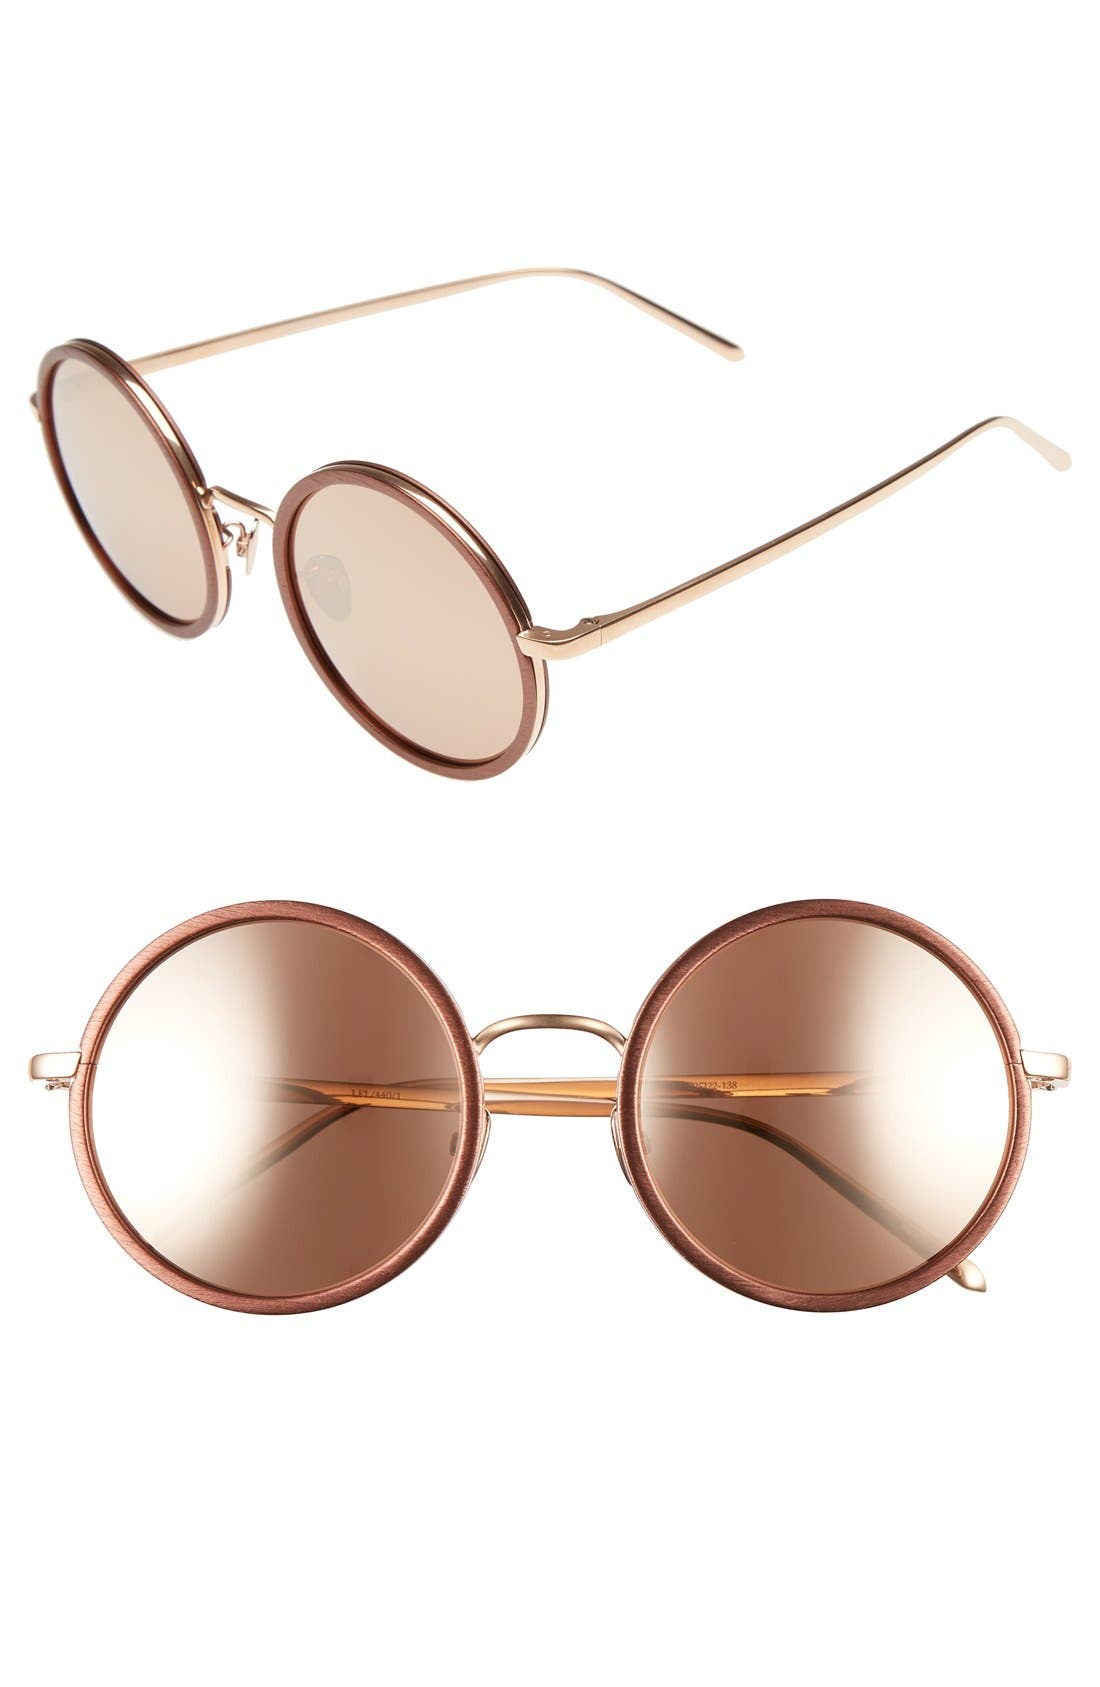 LINDA FARROW 52mm Round 18 Karat Rose Gold Trim Sunglasses